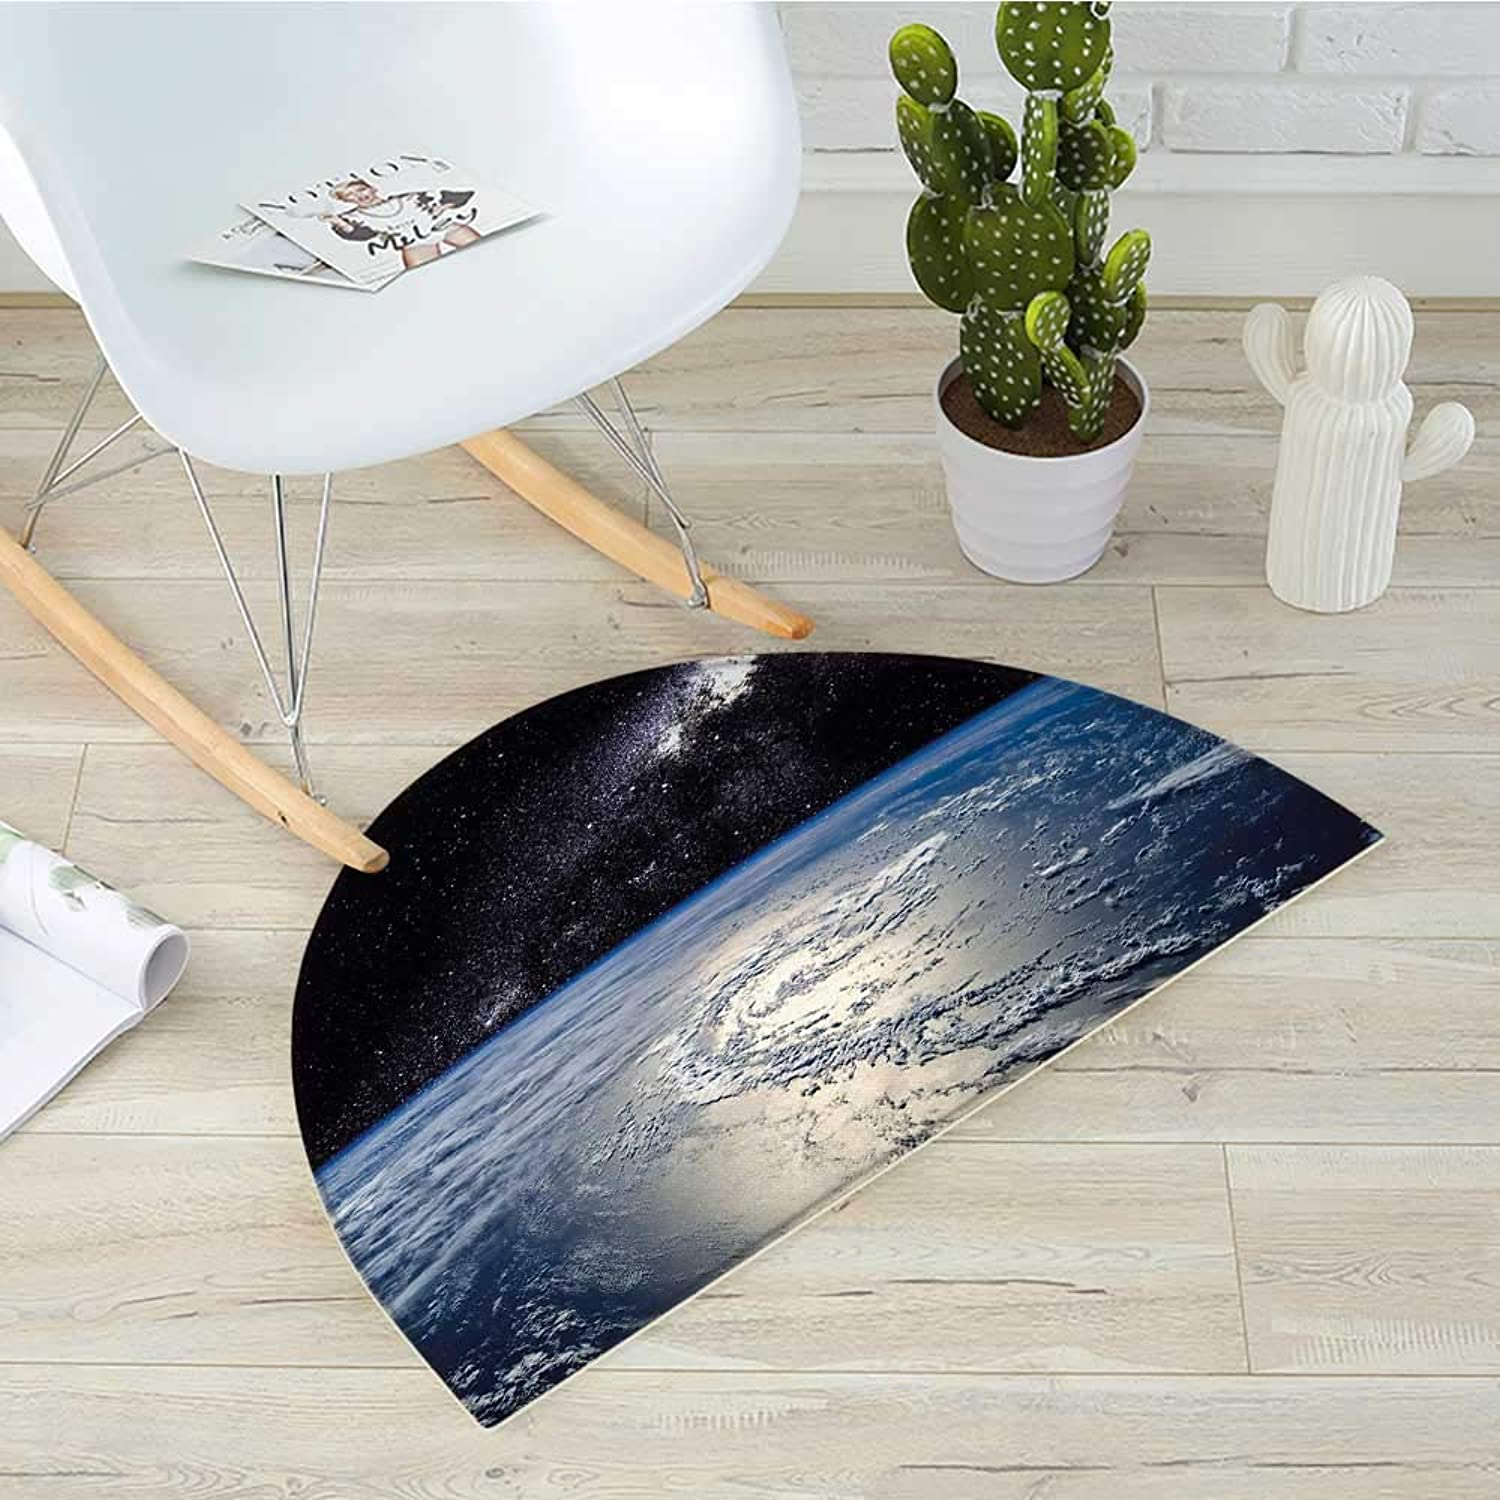 Earth Half Round Door mats Majestic Universe Image with Earth and Distant Nebula Clouds Waters Bathroom Mat H 31.5  xD 47.2  Pale bluee Pale Grey Black